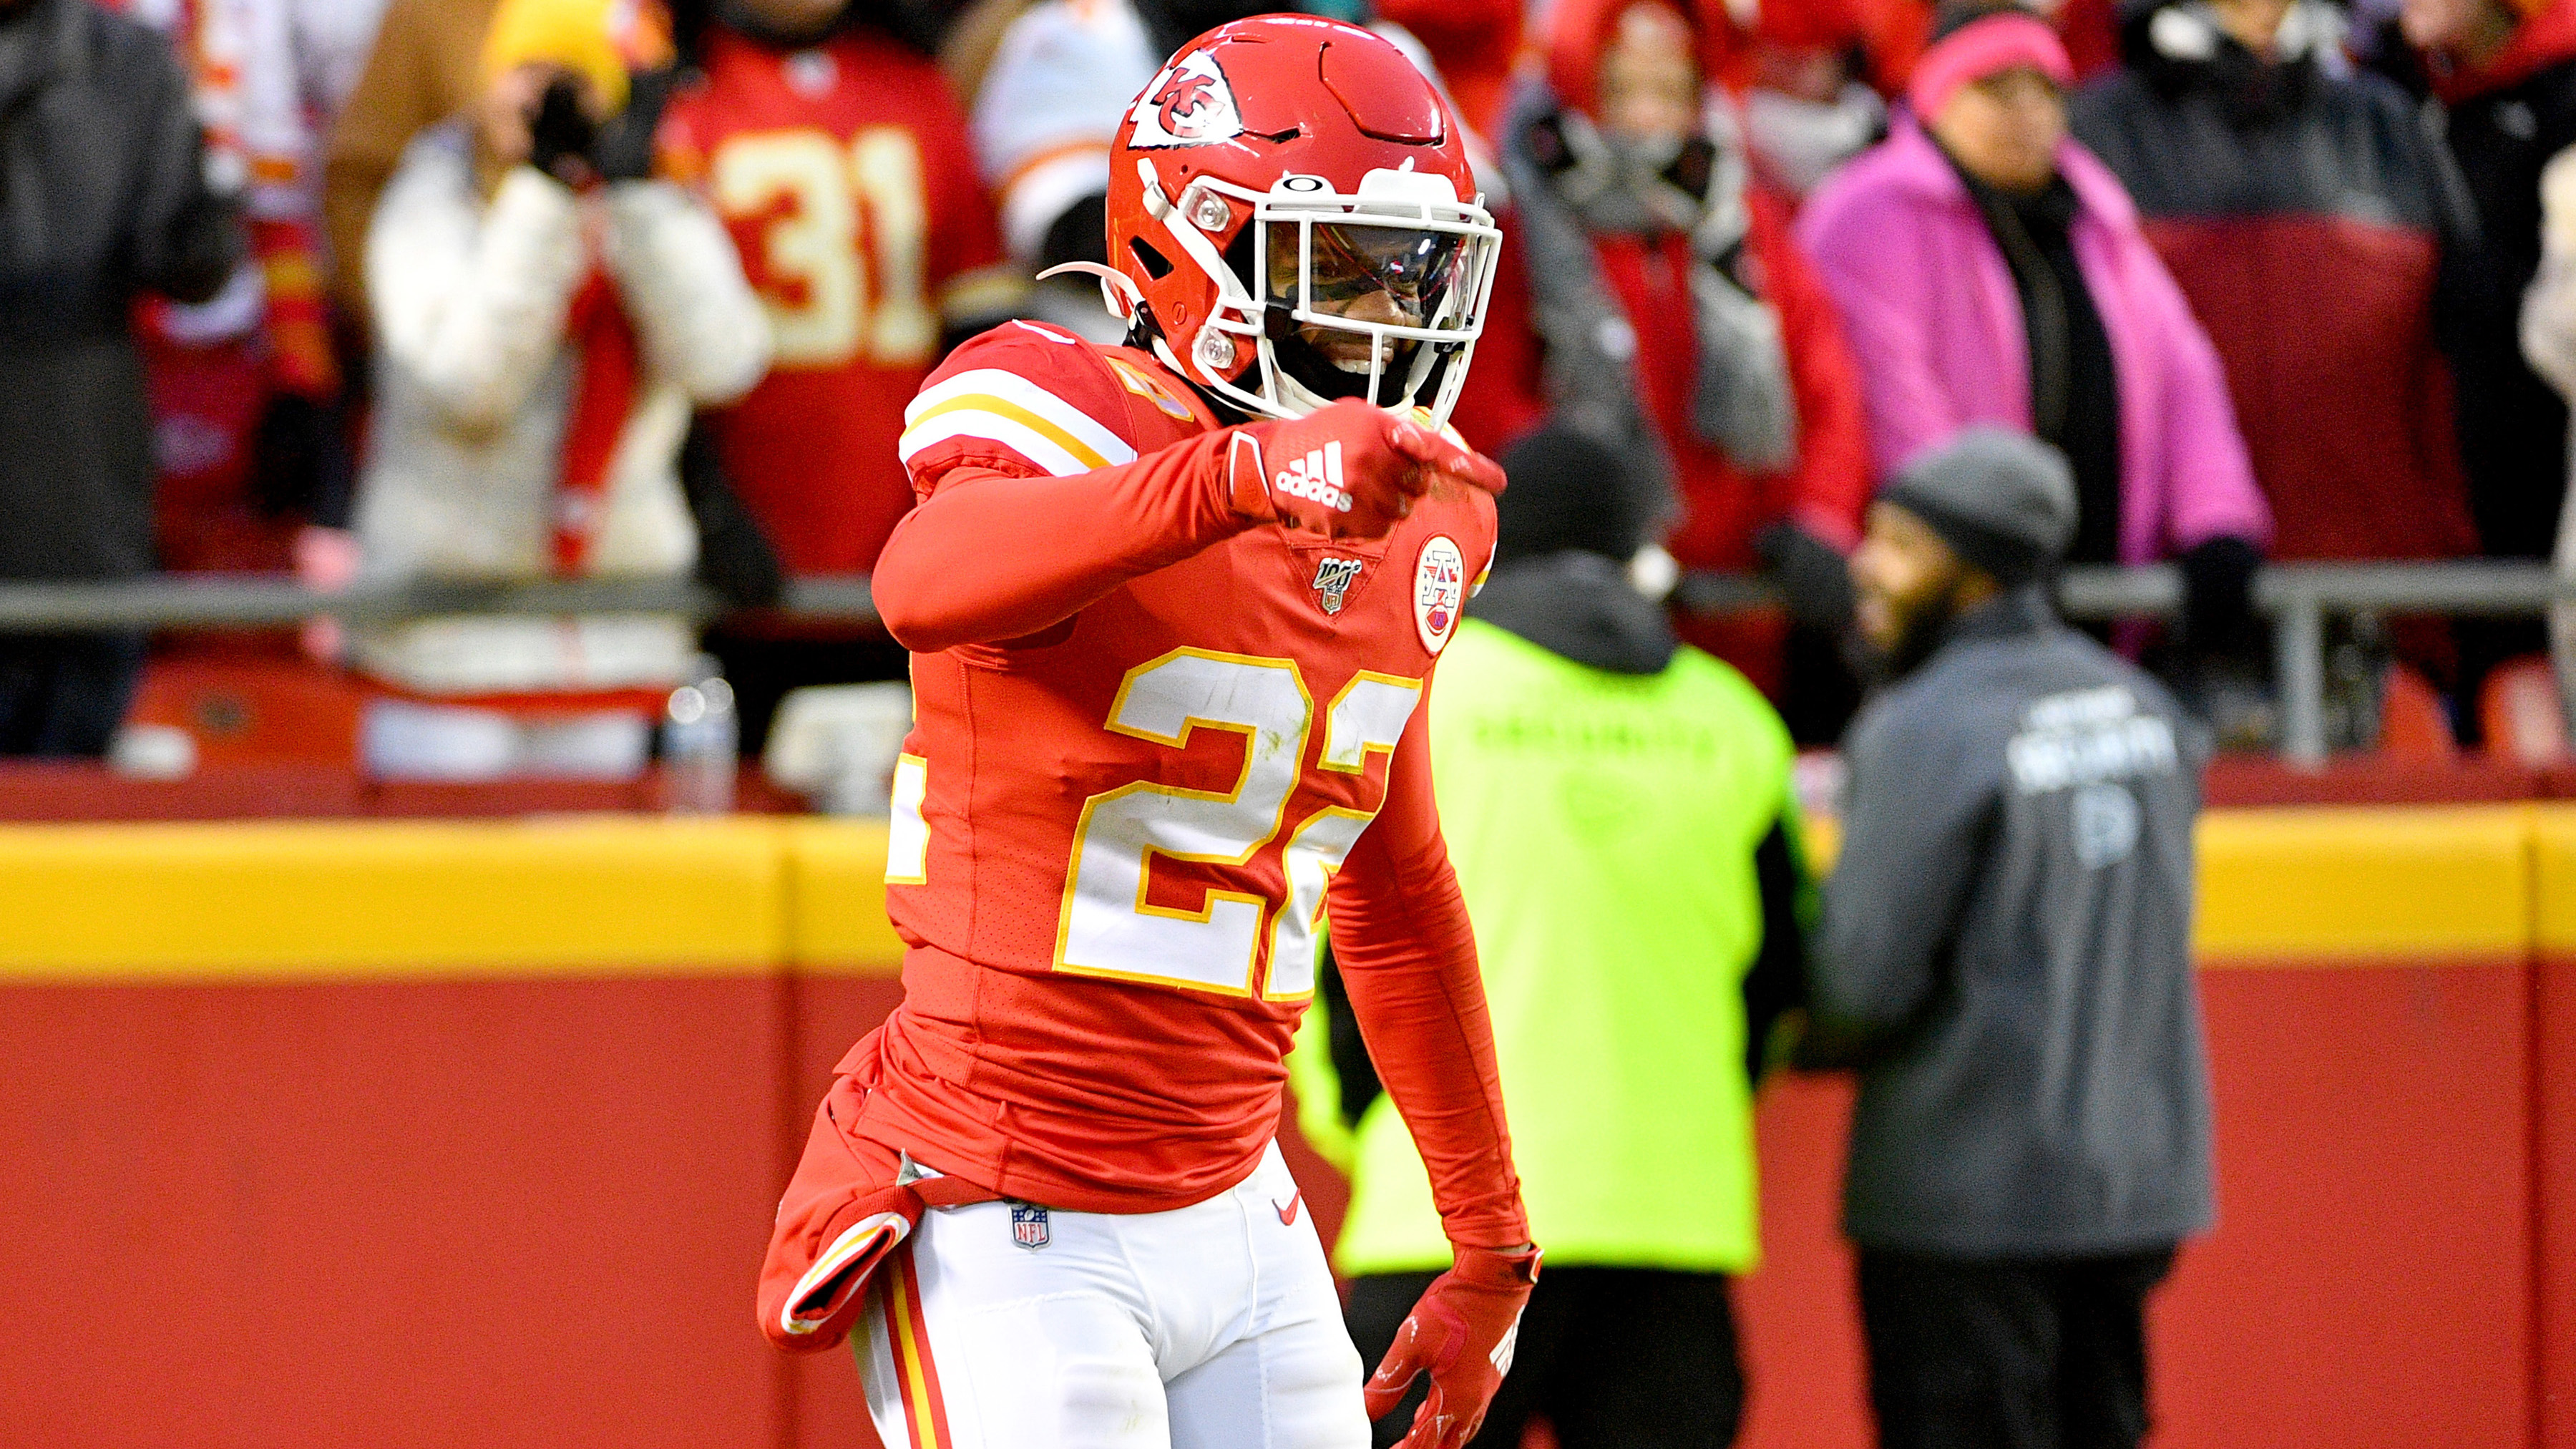 Chiefs hoping for good news on Thornhill after safety exits with knee injury